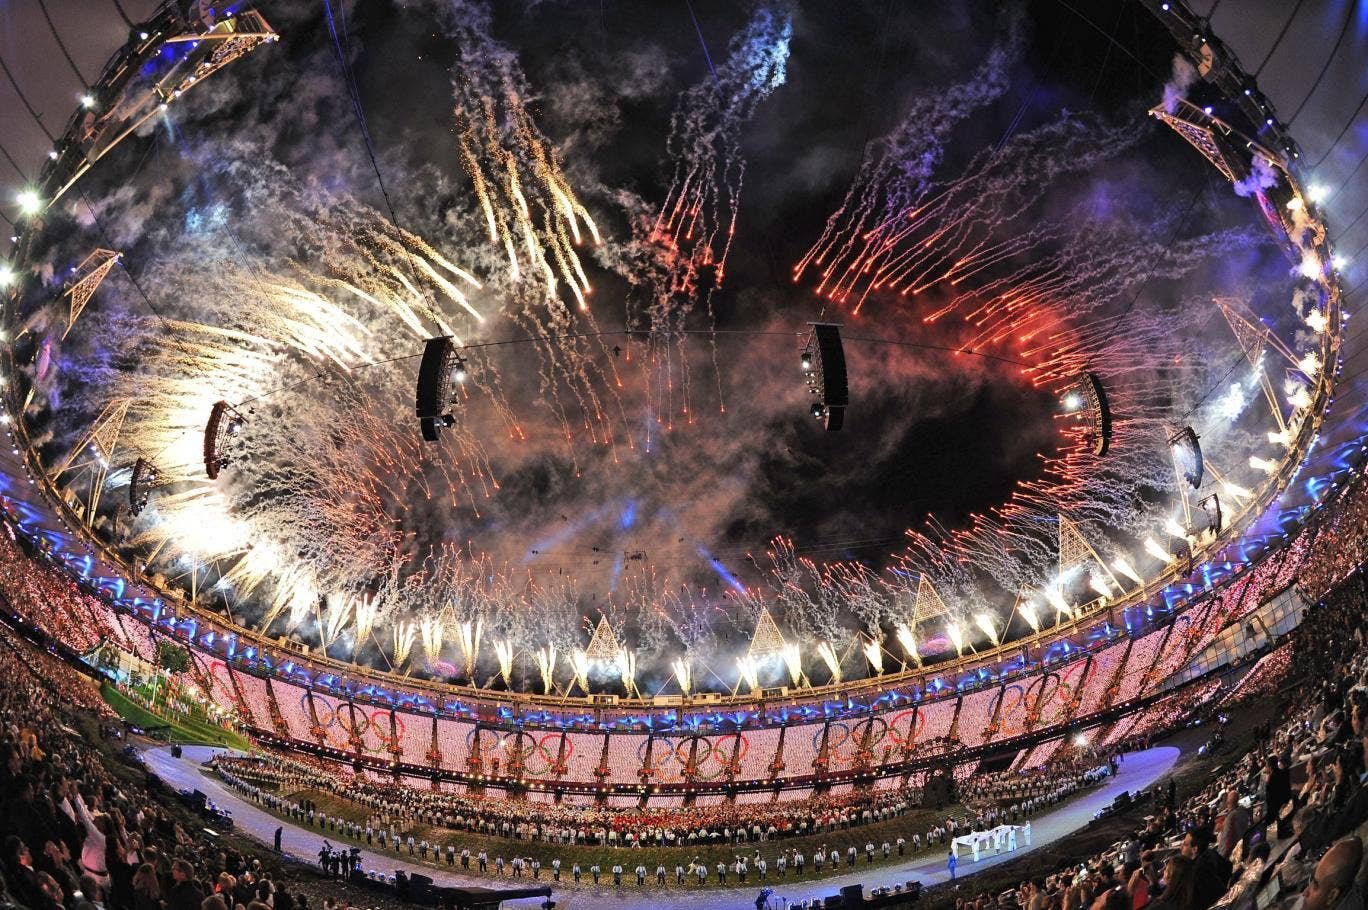 Fireworks explode from the stadium roof during the Opening Ceremony of the London 2012 Olympic Games